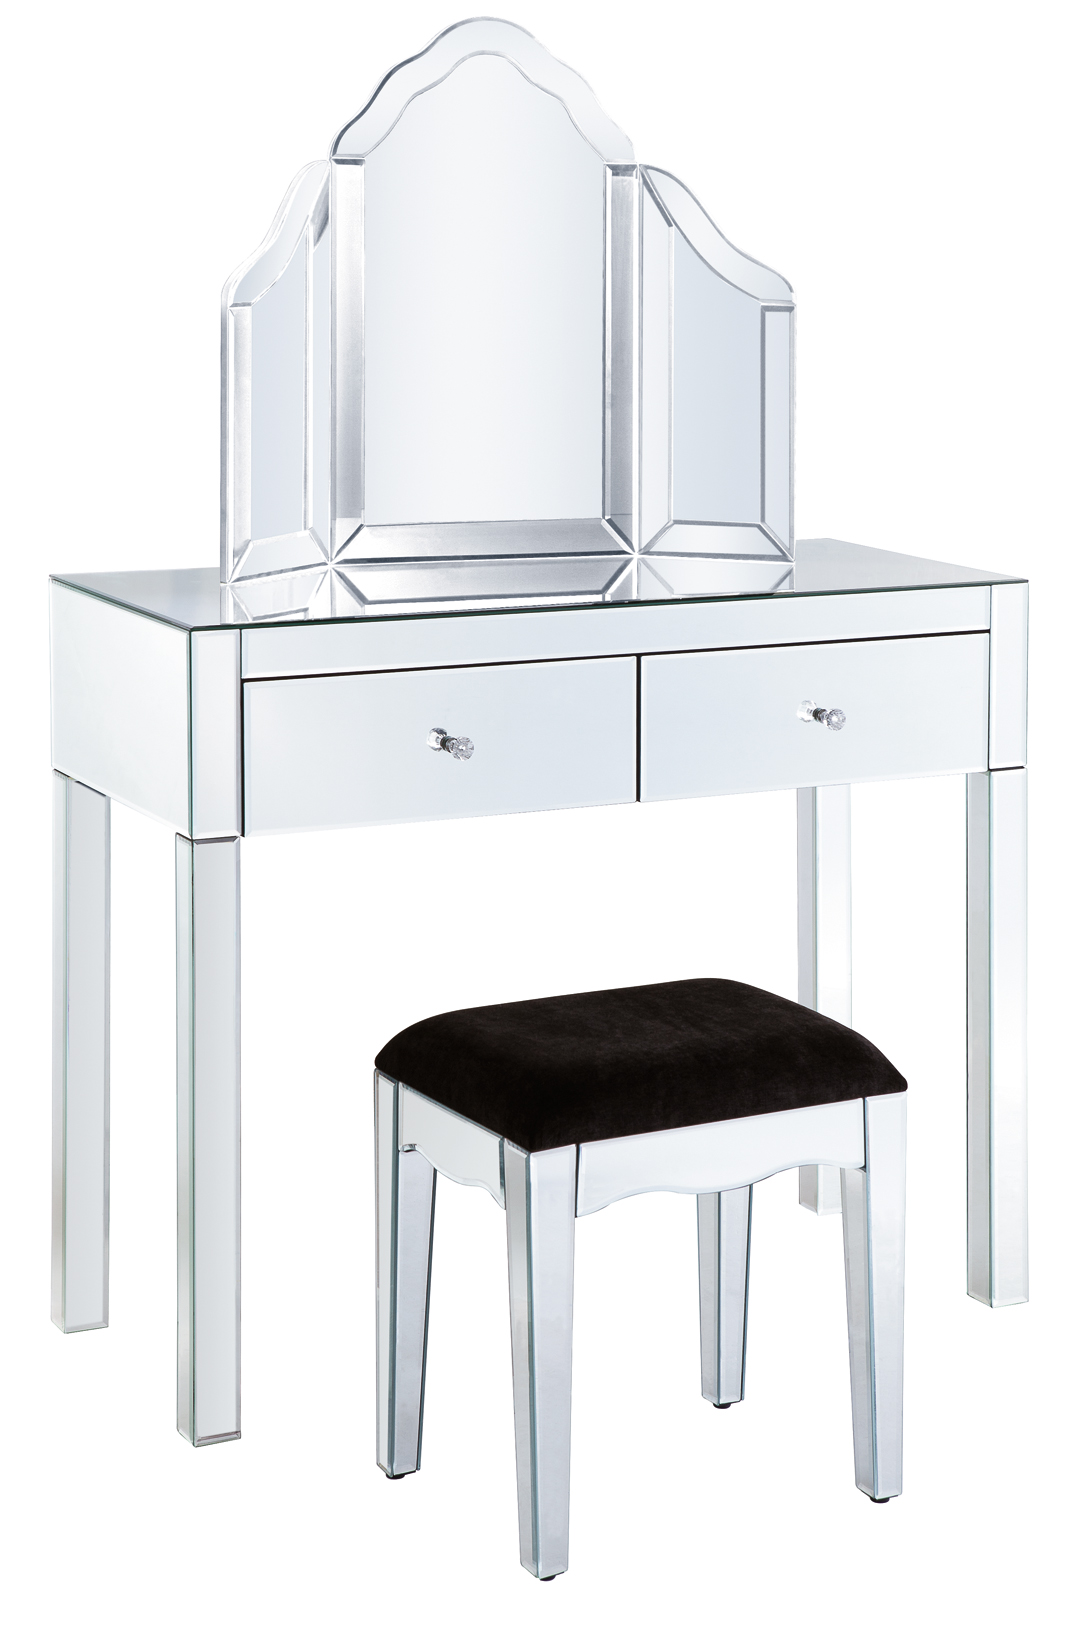 Mirrored Vanity Table And Stool: 2 Draw Dressing Table + Stool + Mirror Package